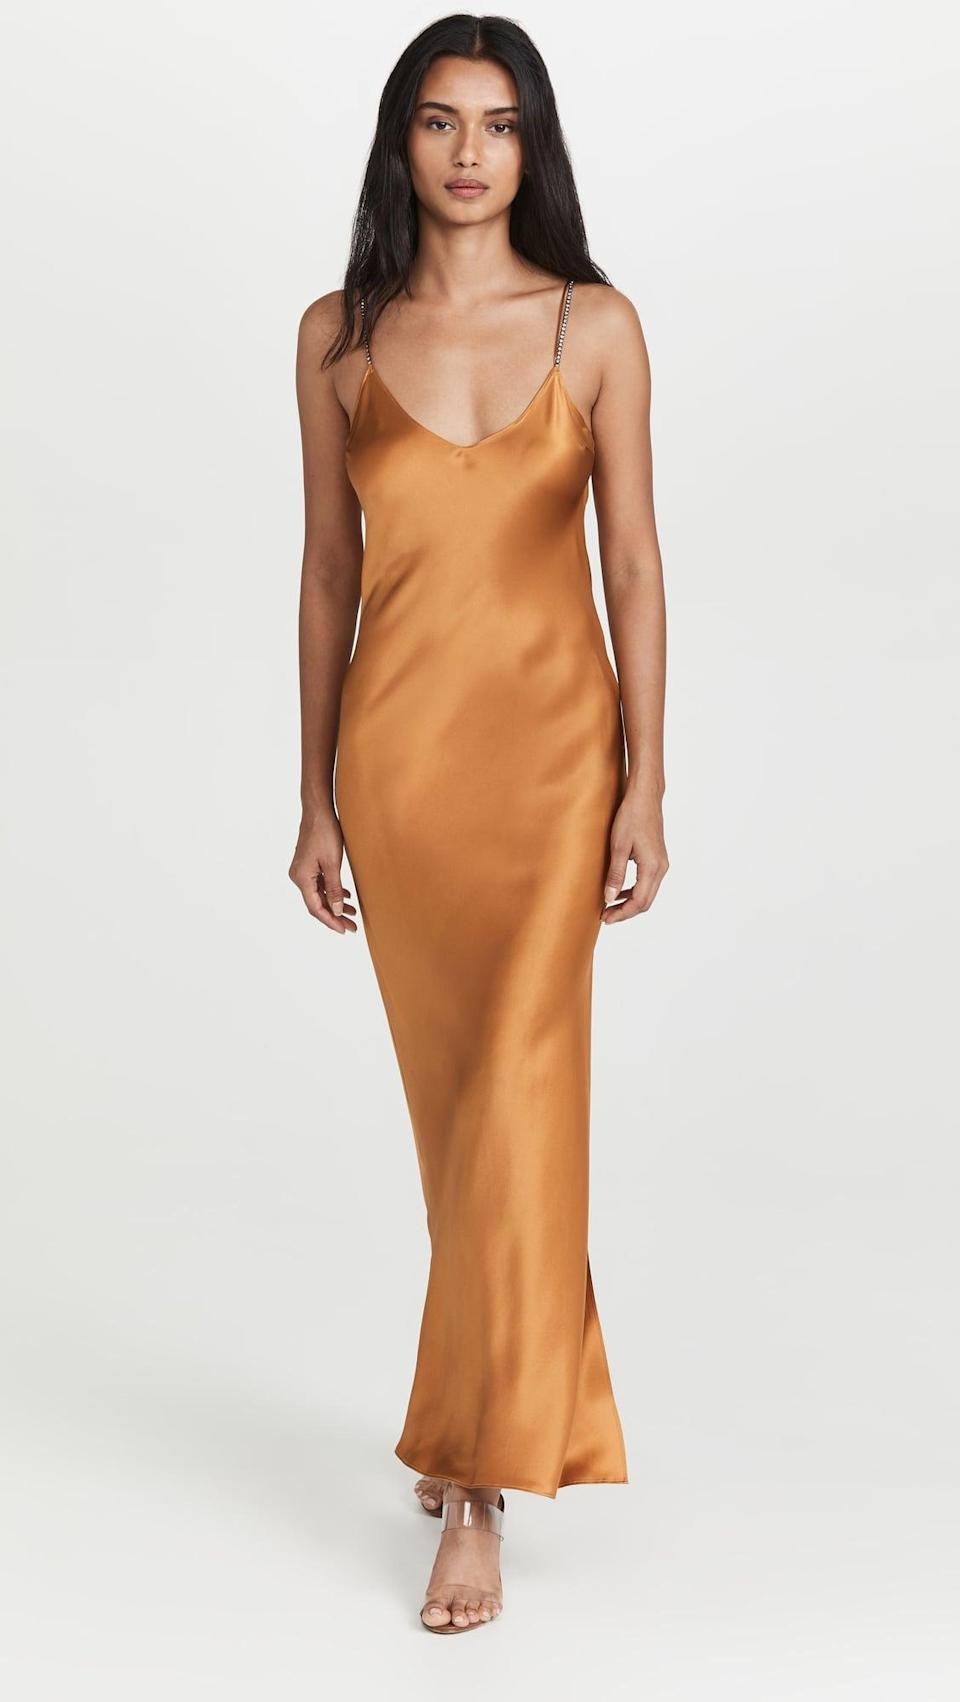 <p>This <span>Dannijo Crystal Strap Silk Slip Dress</span> ($365) is so sexy and fun. The crystal embellished straps is adorable.</p>